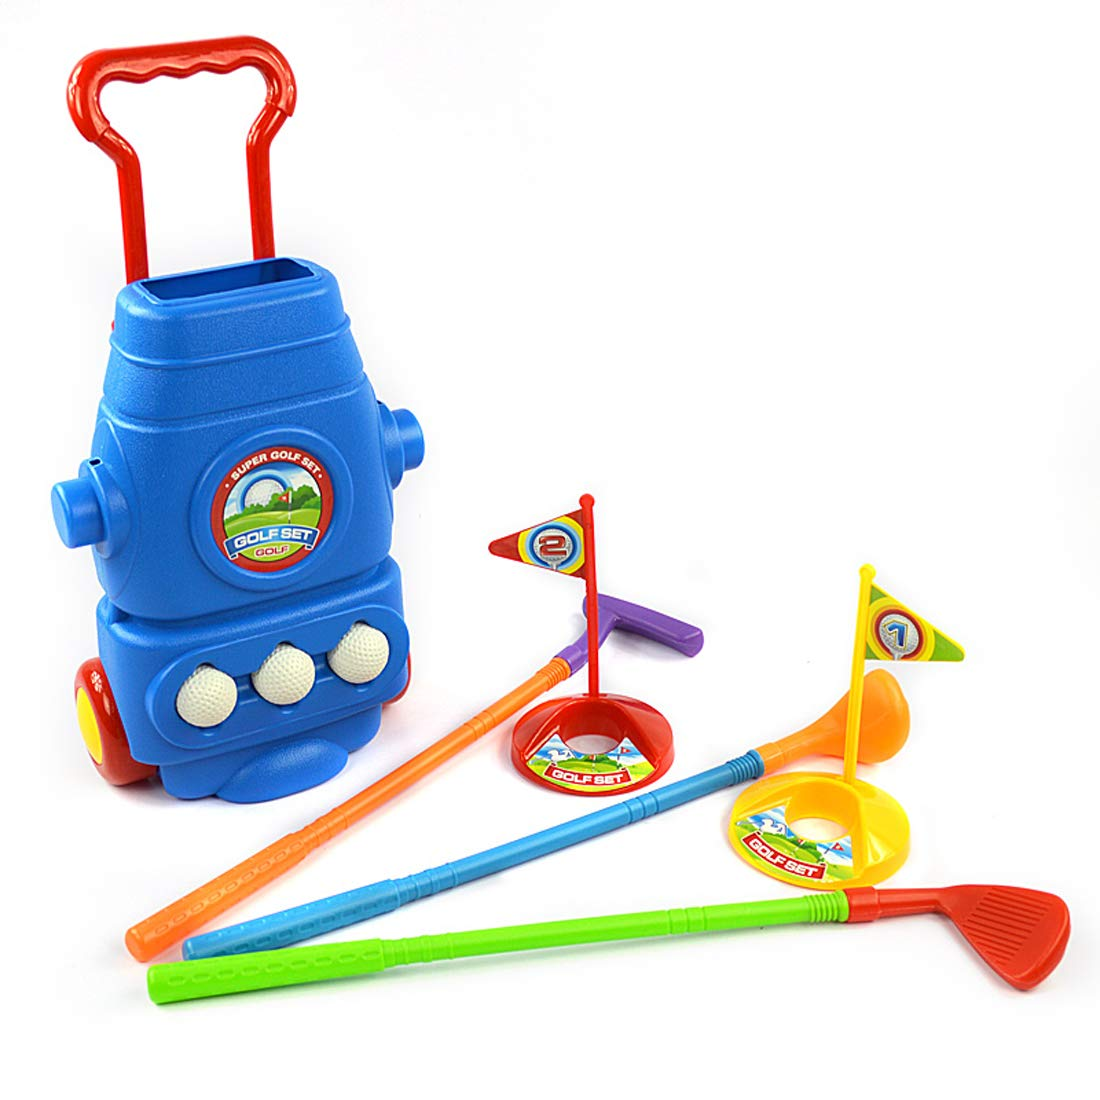 Chi Mercantile Complete Kiddie Golf Pro Toy Set with Bag on Wheels, Clubs, Balls and Practice Holes by Chi Mercantile